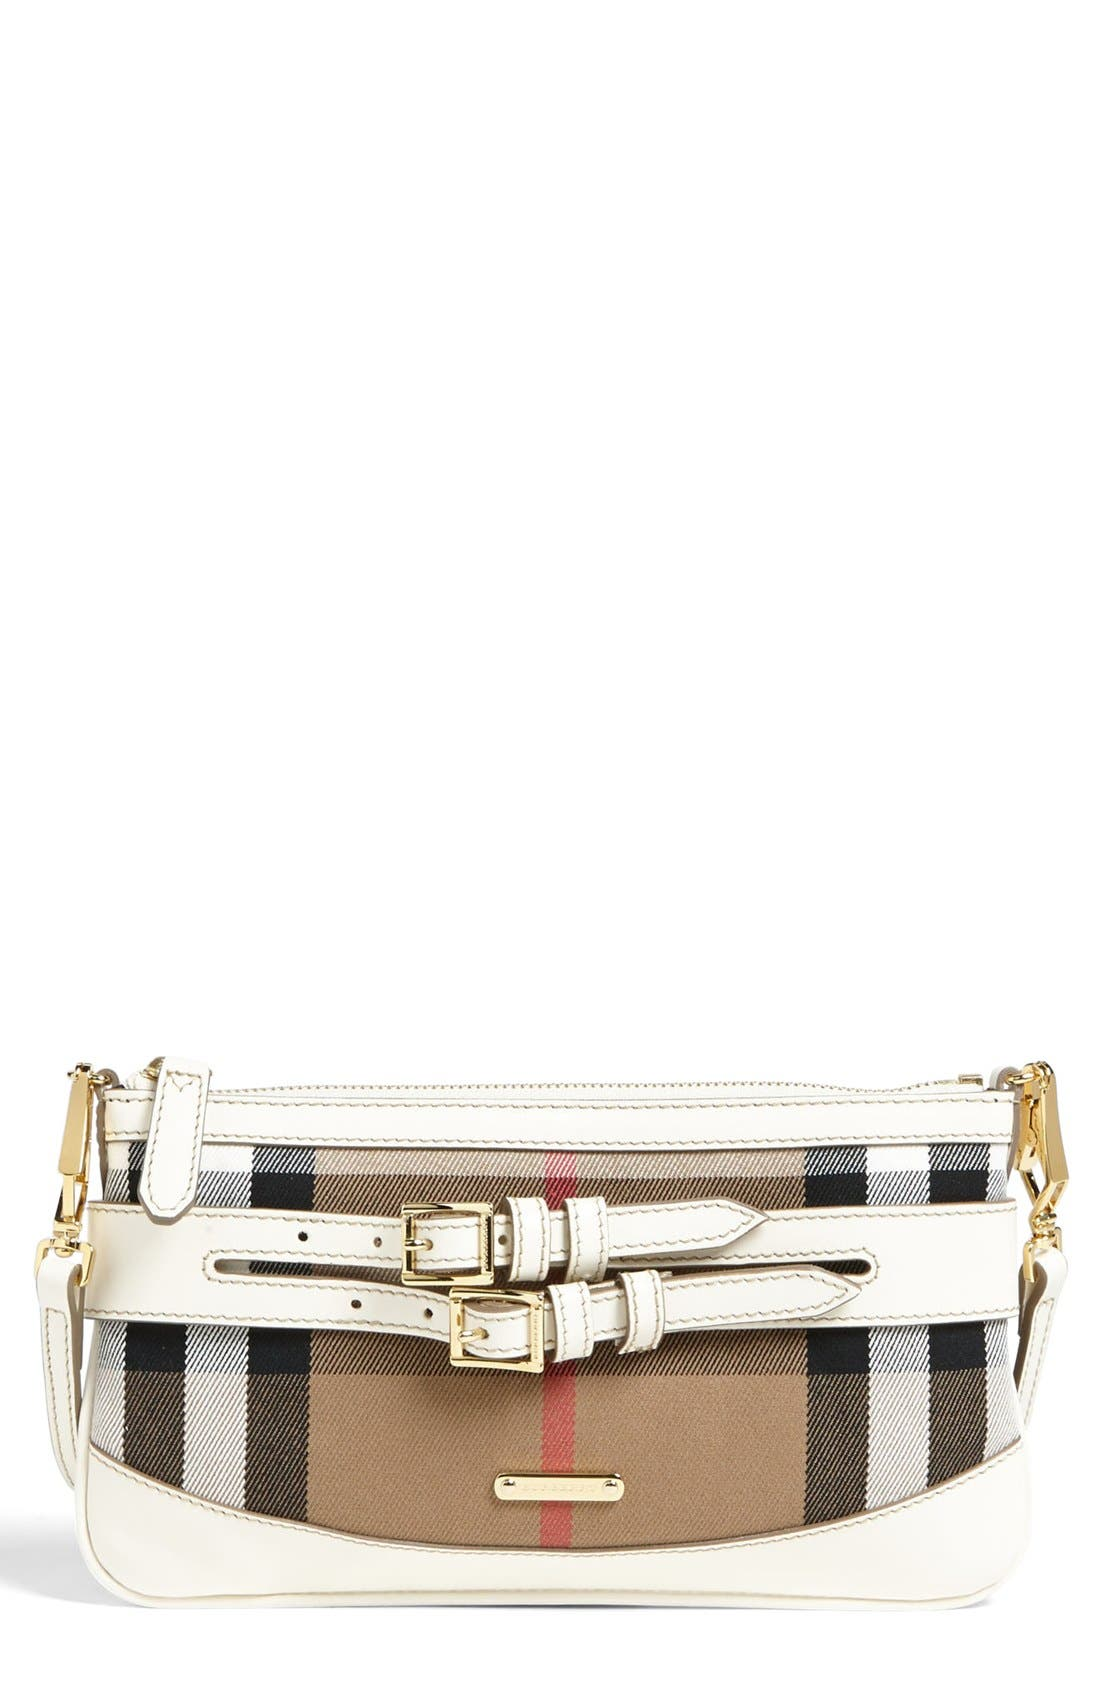 Alternate Image 1 Selected - Burberry 'House Check' Crossbody Clutch